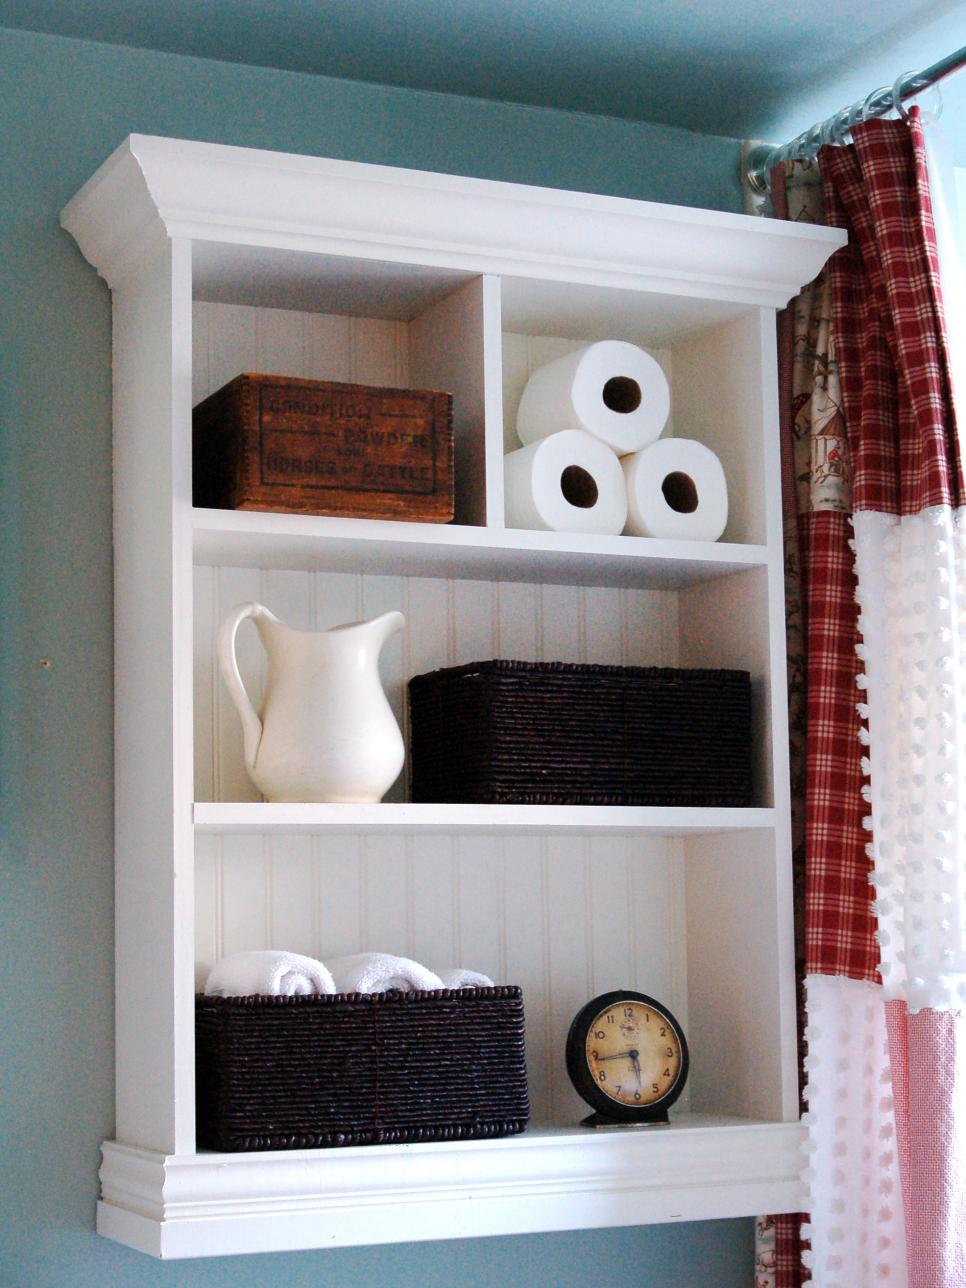 Clever Bathroom Storage Ideas HGTV - Toilet organizer for small bathroom ideas